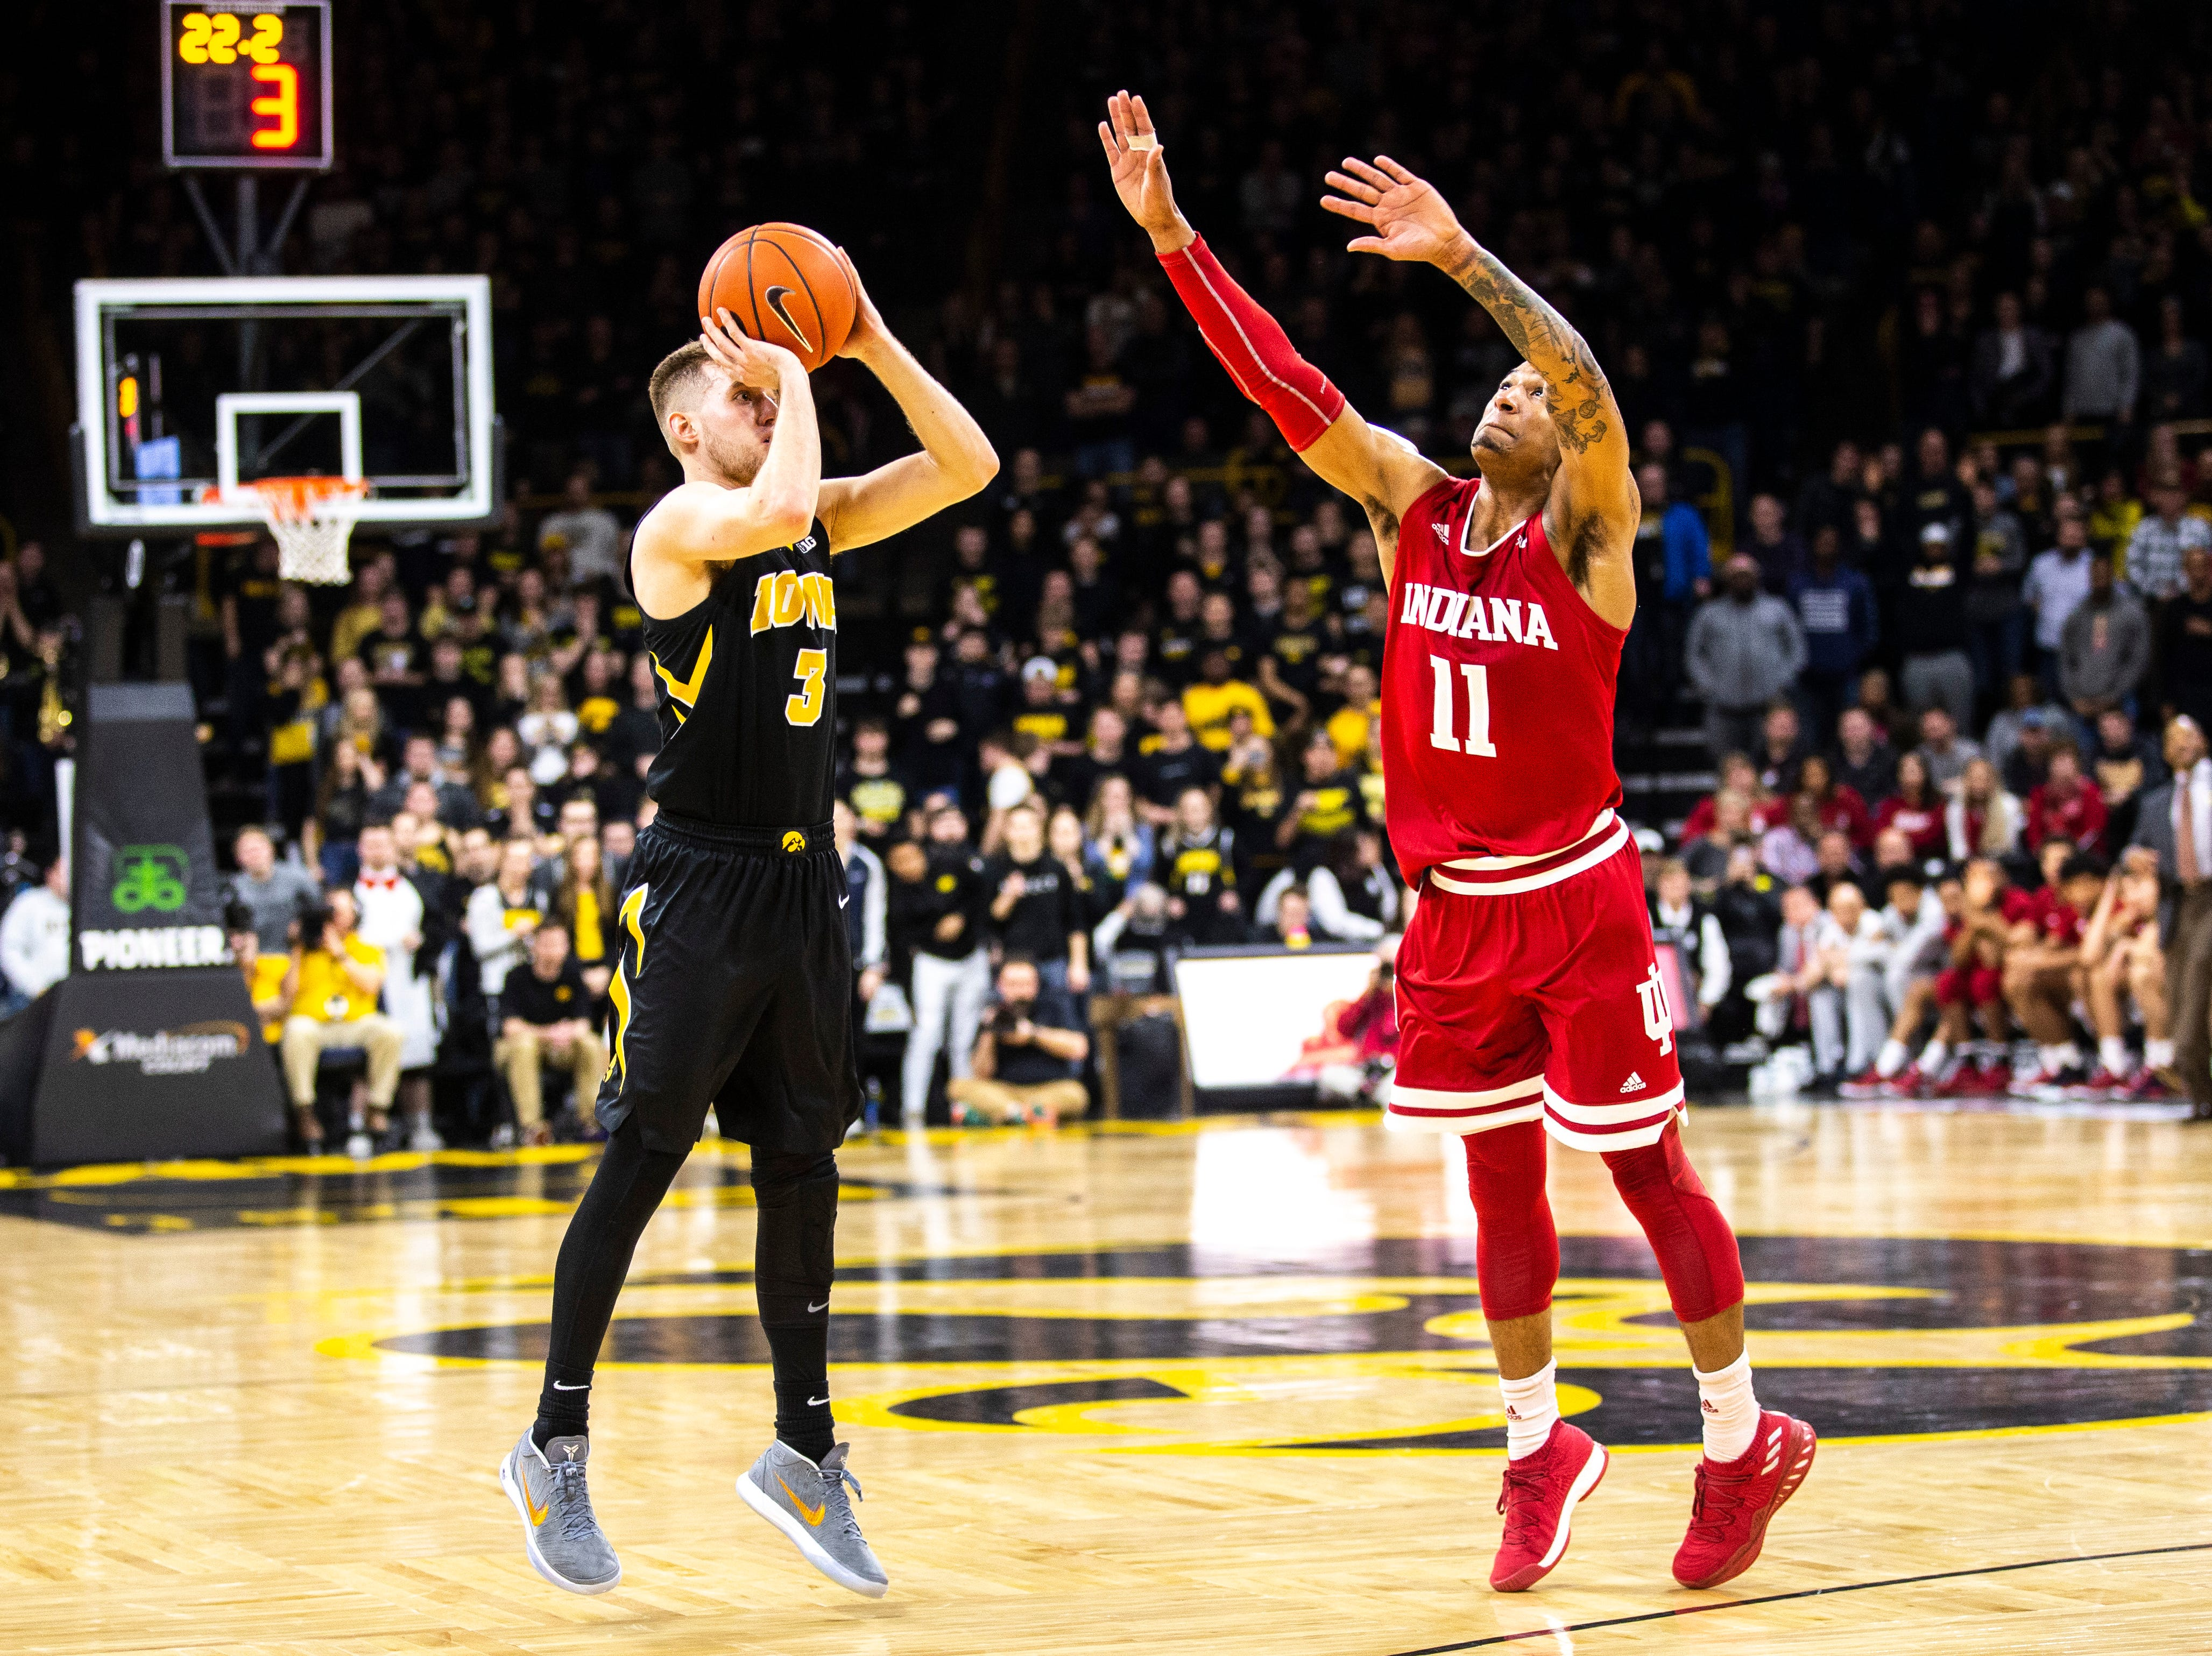 Iowa guard Jordan Bohannon (3) shoots 3-point basket in overtime during a NCAA Big Ten Conference men's basketball game on Friday, Feb. 22, 2019 at Carver-Hawkeye Arena in Iowa City, Iowa.